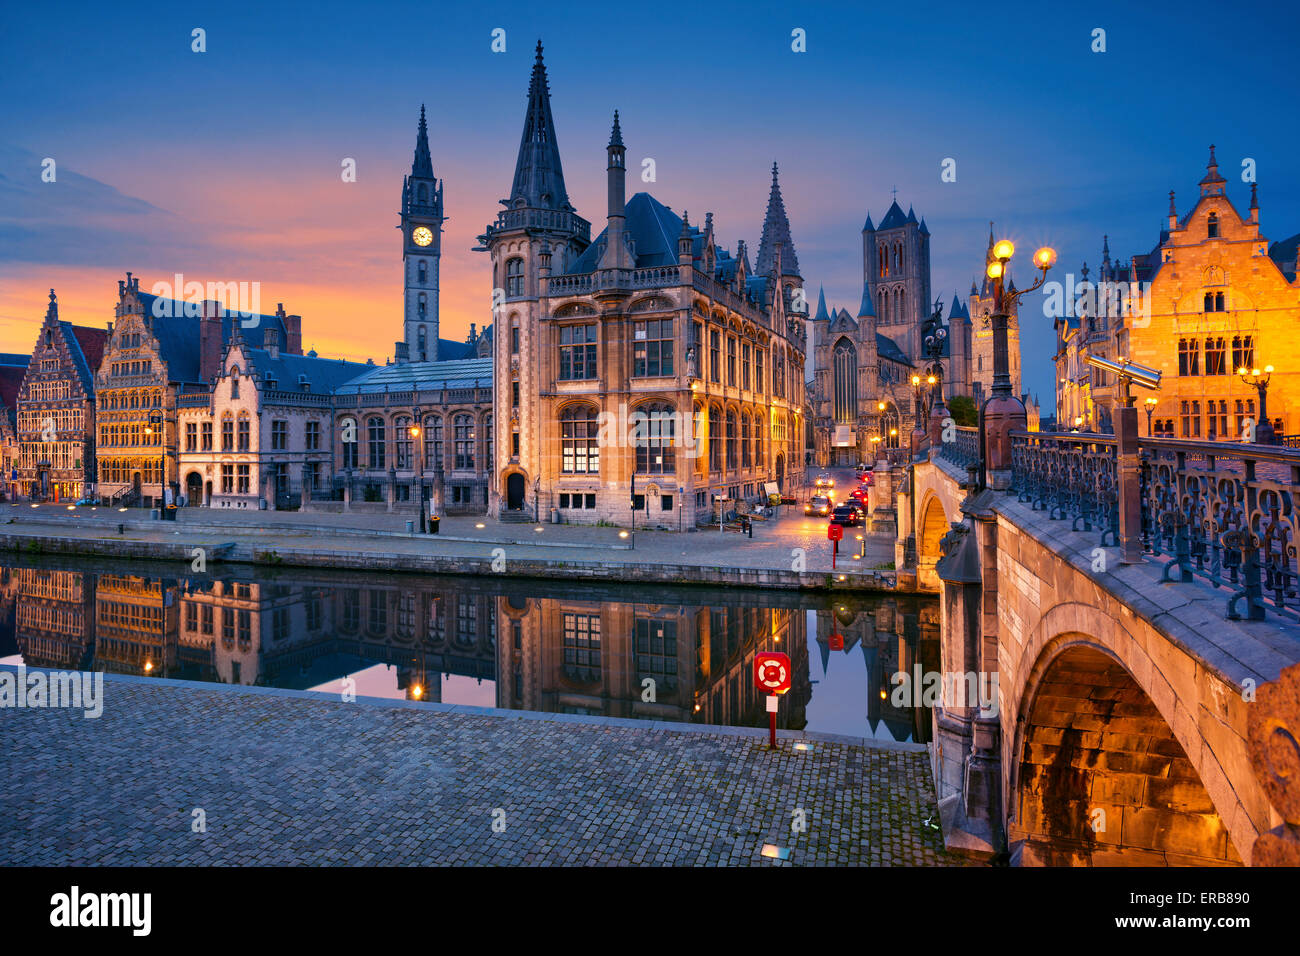 Ghent. Image of Ghent, Belgium during twilight blue hour. - Stock Image